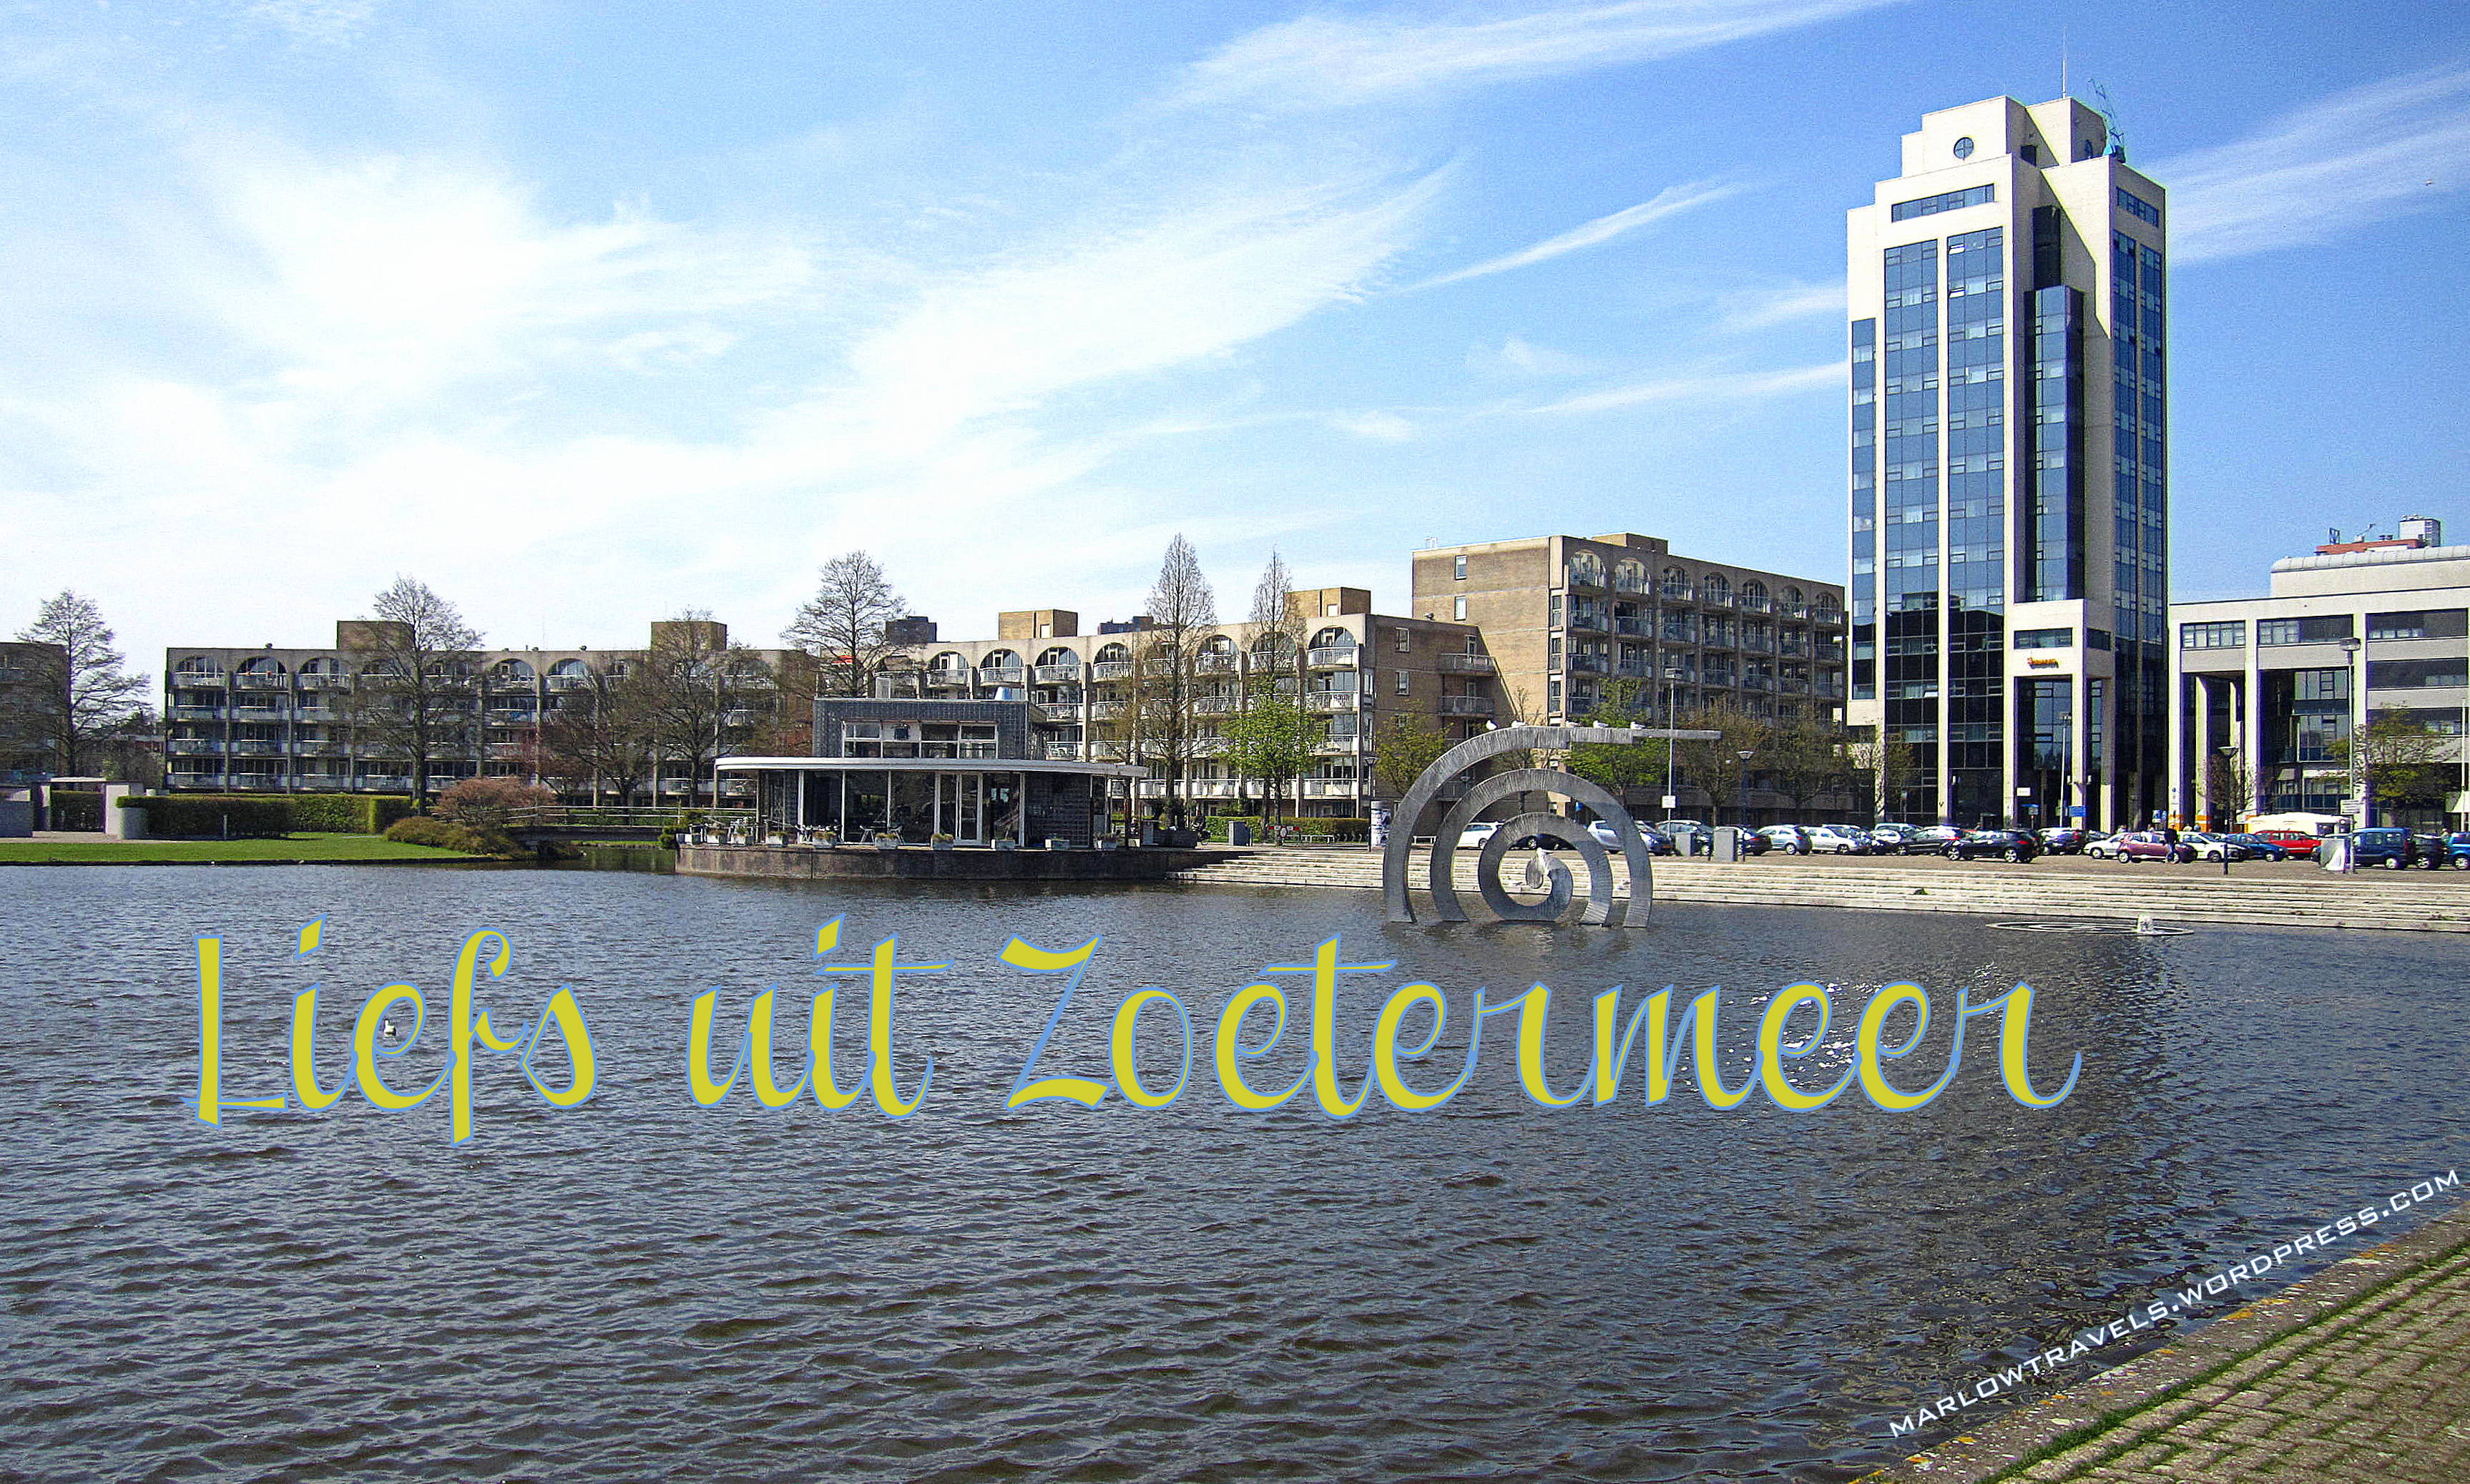 LiefsuitZoetermeer